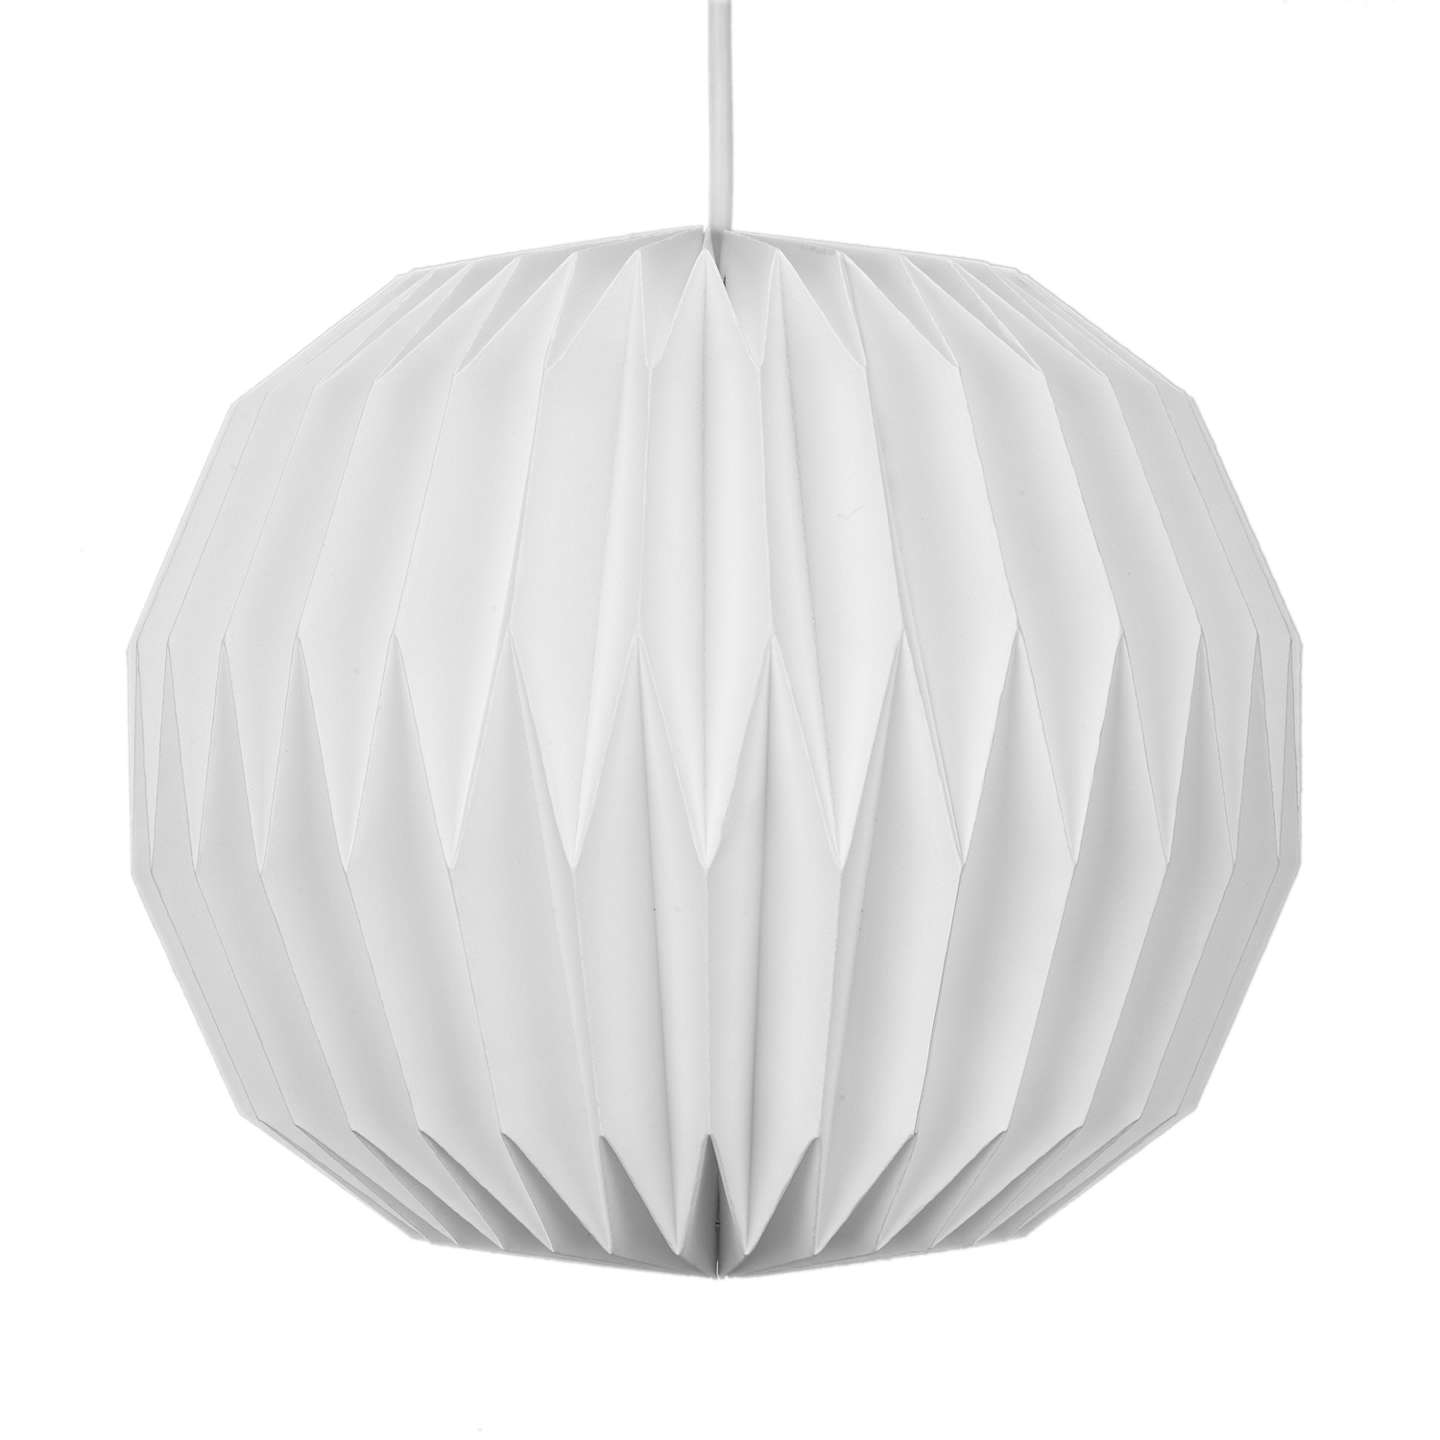 House by john lewis issie easy to fit ceiling shade white at john lewis buyhouse by john lewis issie easy to fit ceiling shade white online at mozeypictures Images